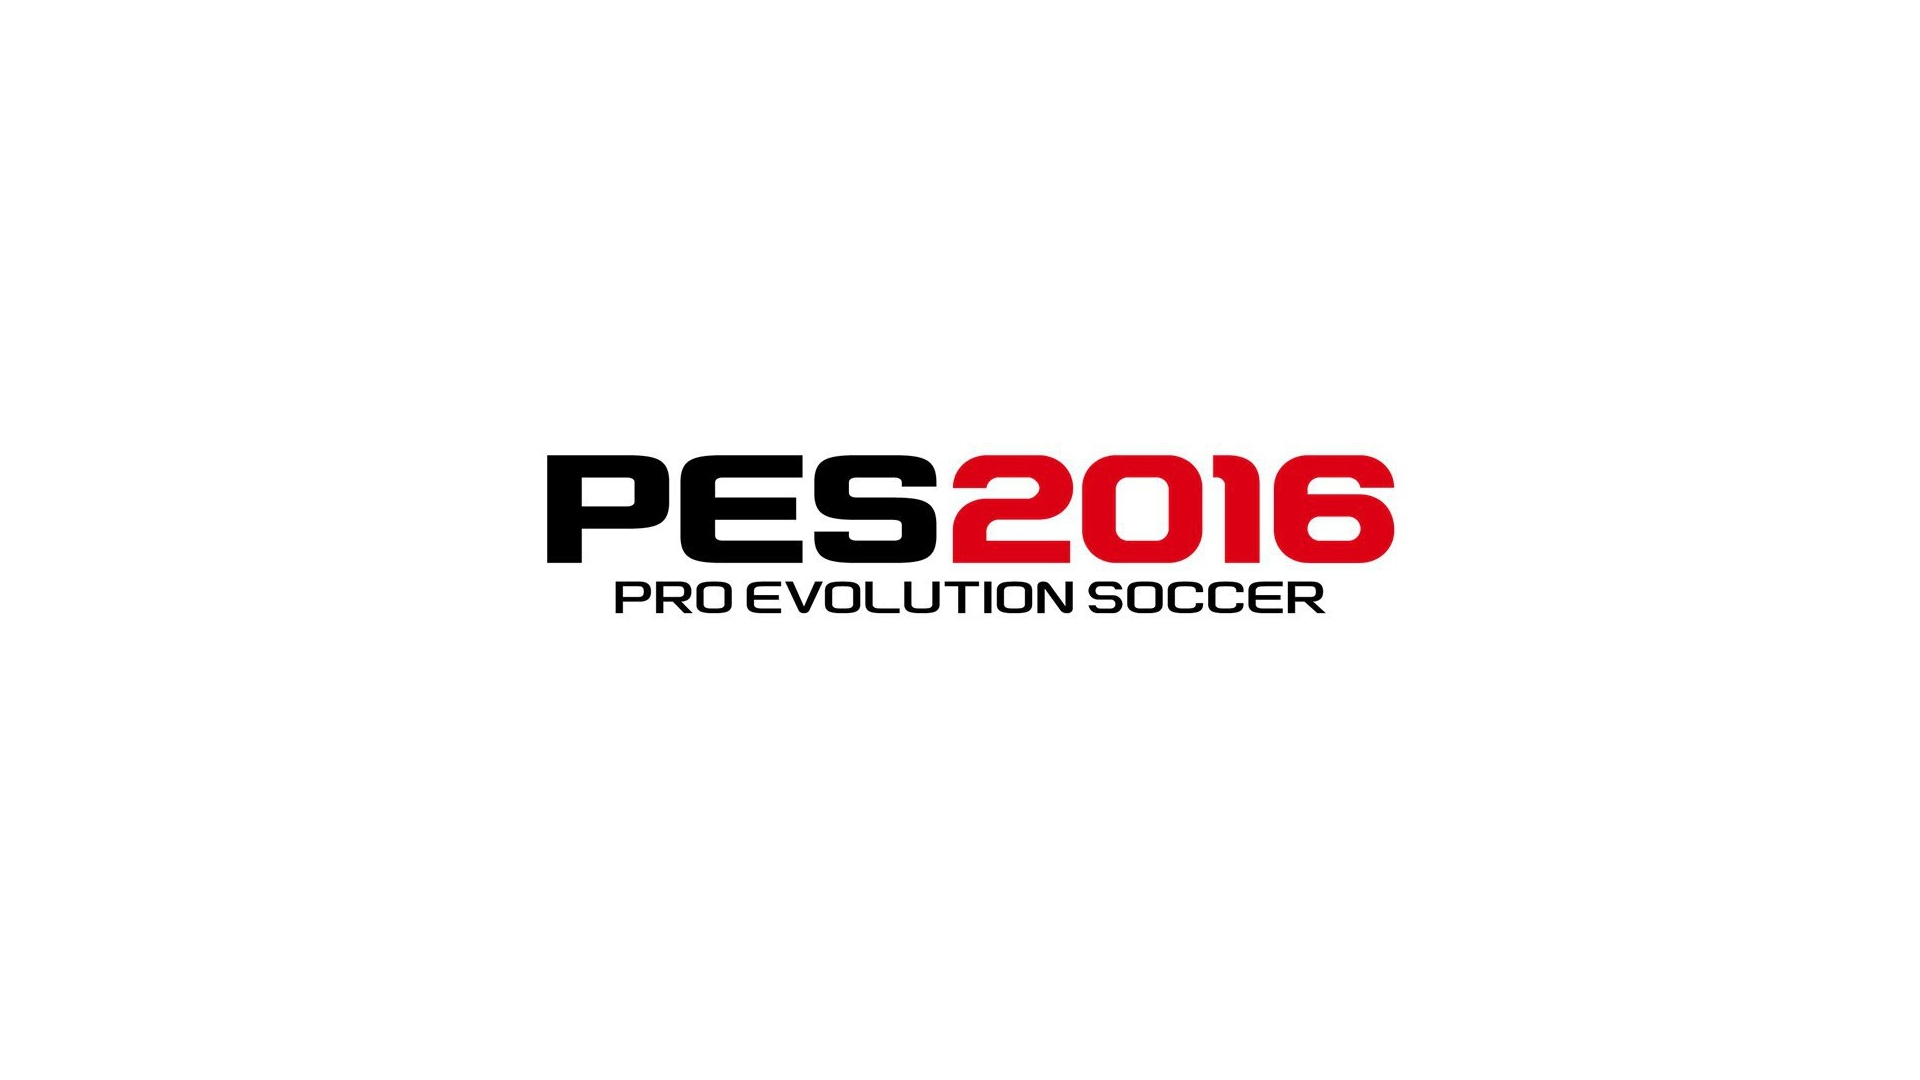 Pro Evolution Soccer 2016 Official PC Requirements